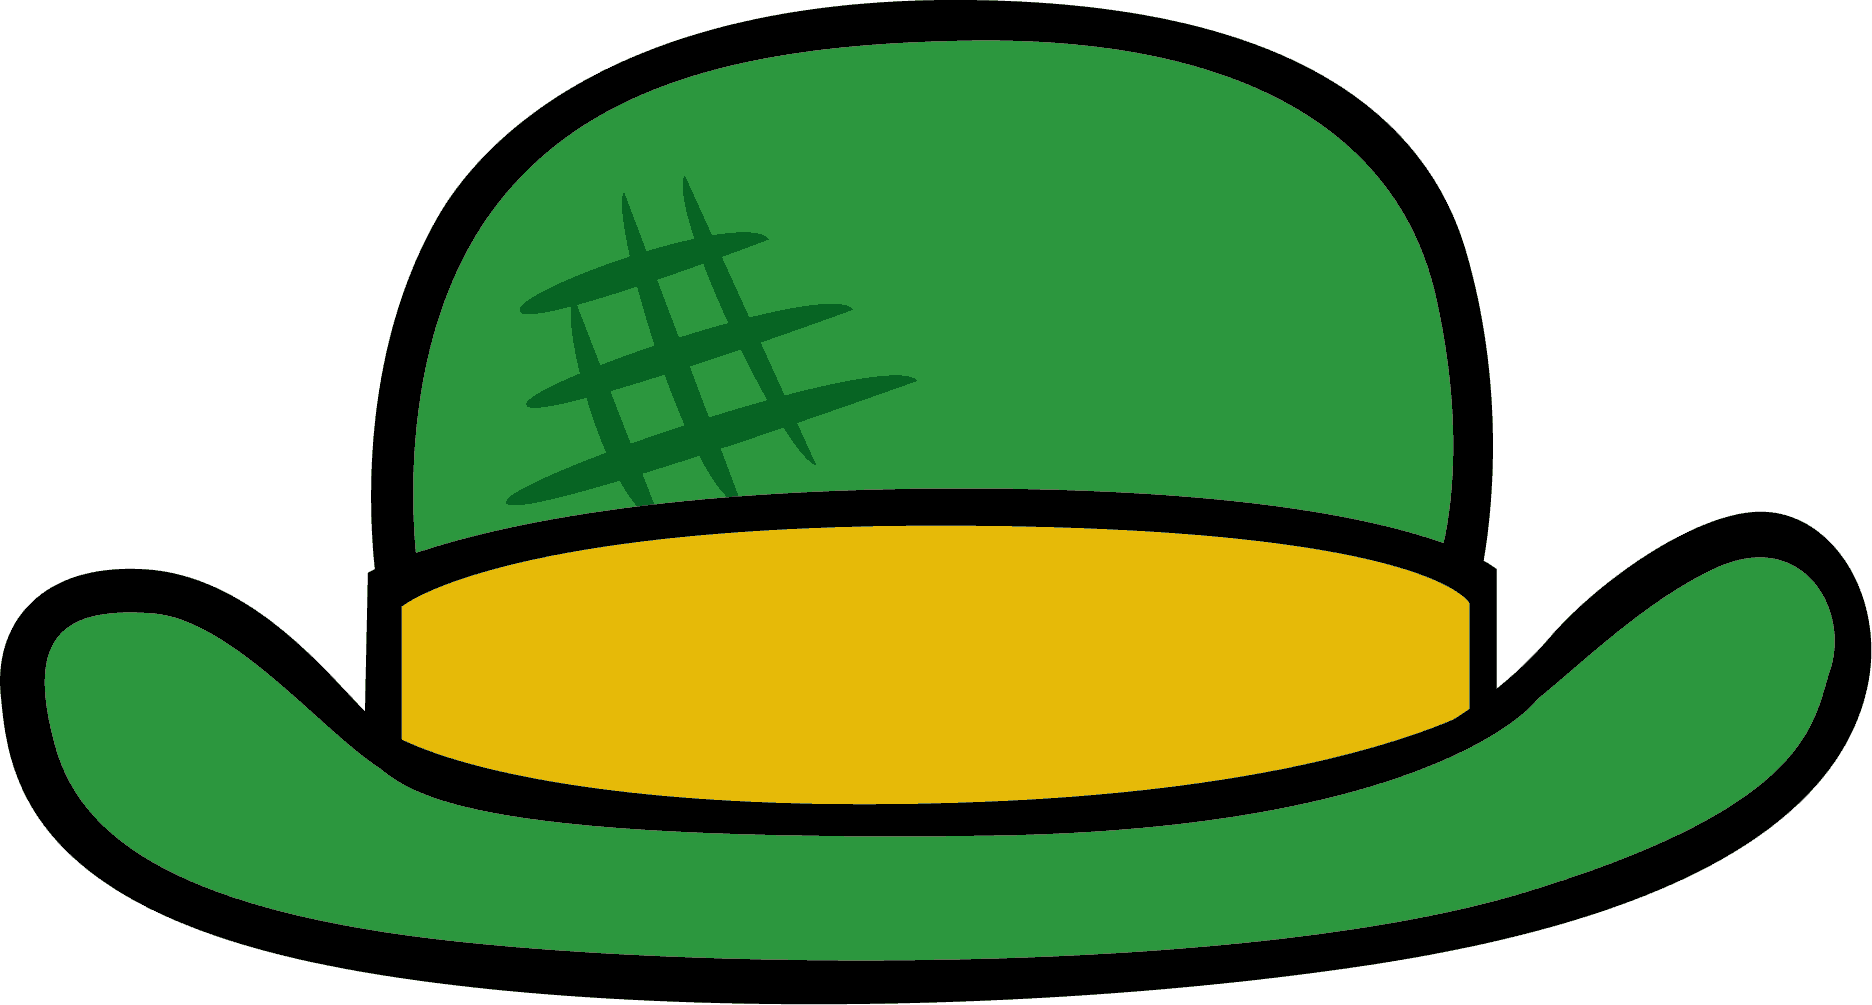 Free Hats Picture, Download Free Clip Art, Free Clip Art on.